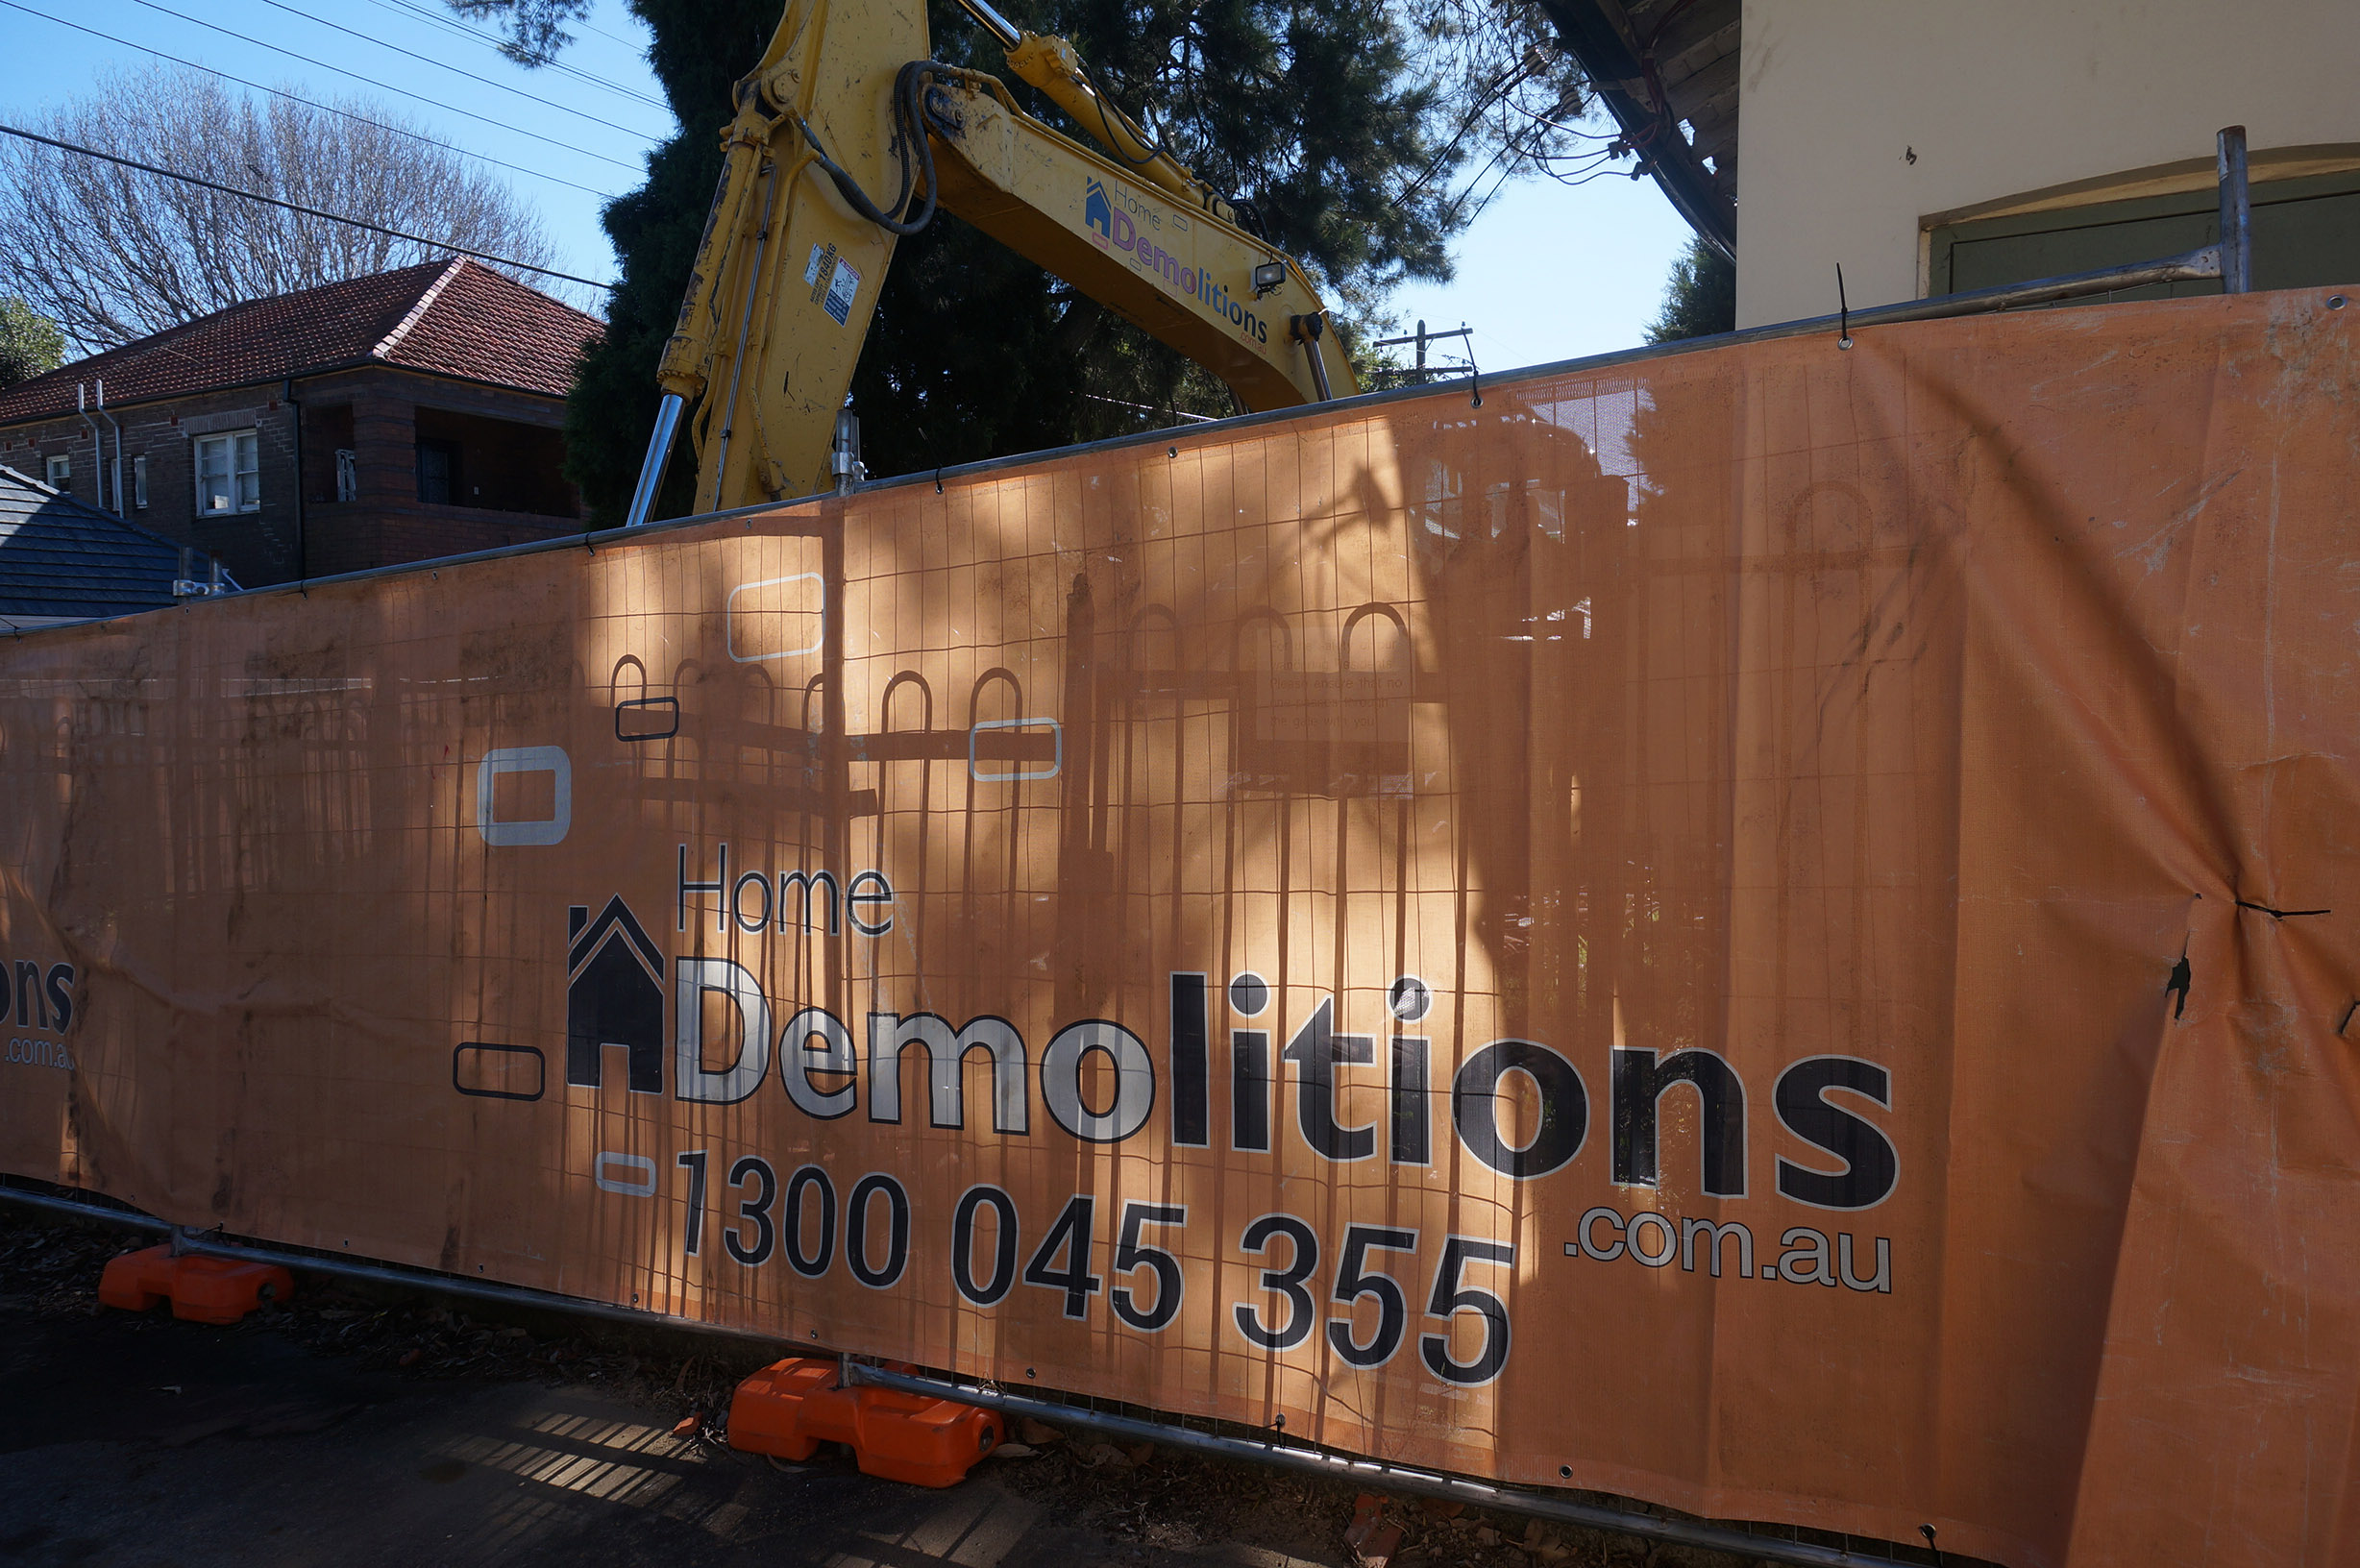 - thank you for you interest in Home demolition, we will be in touch shortly.